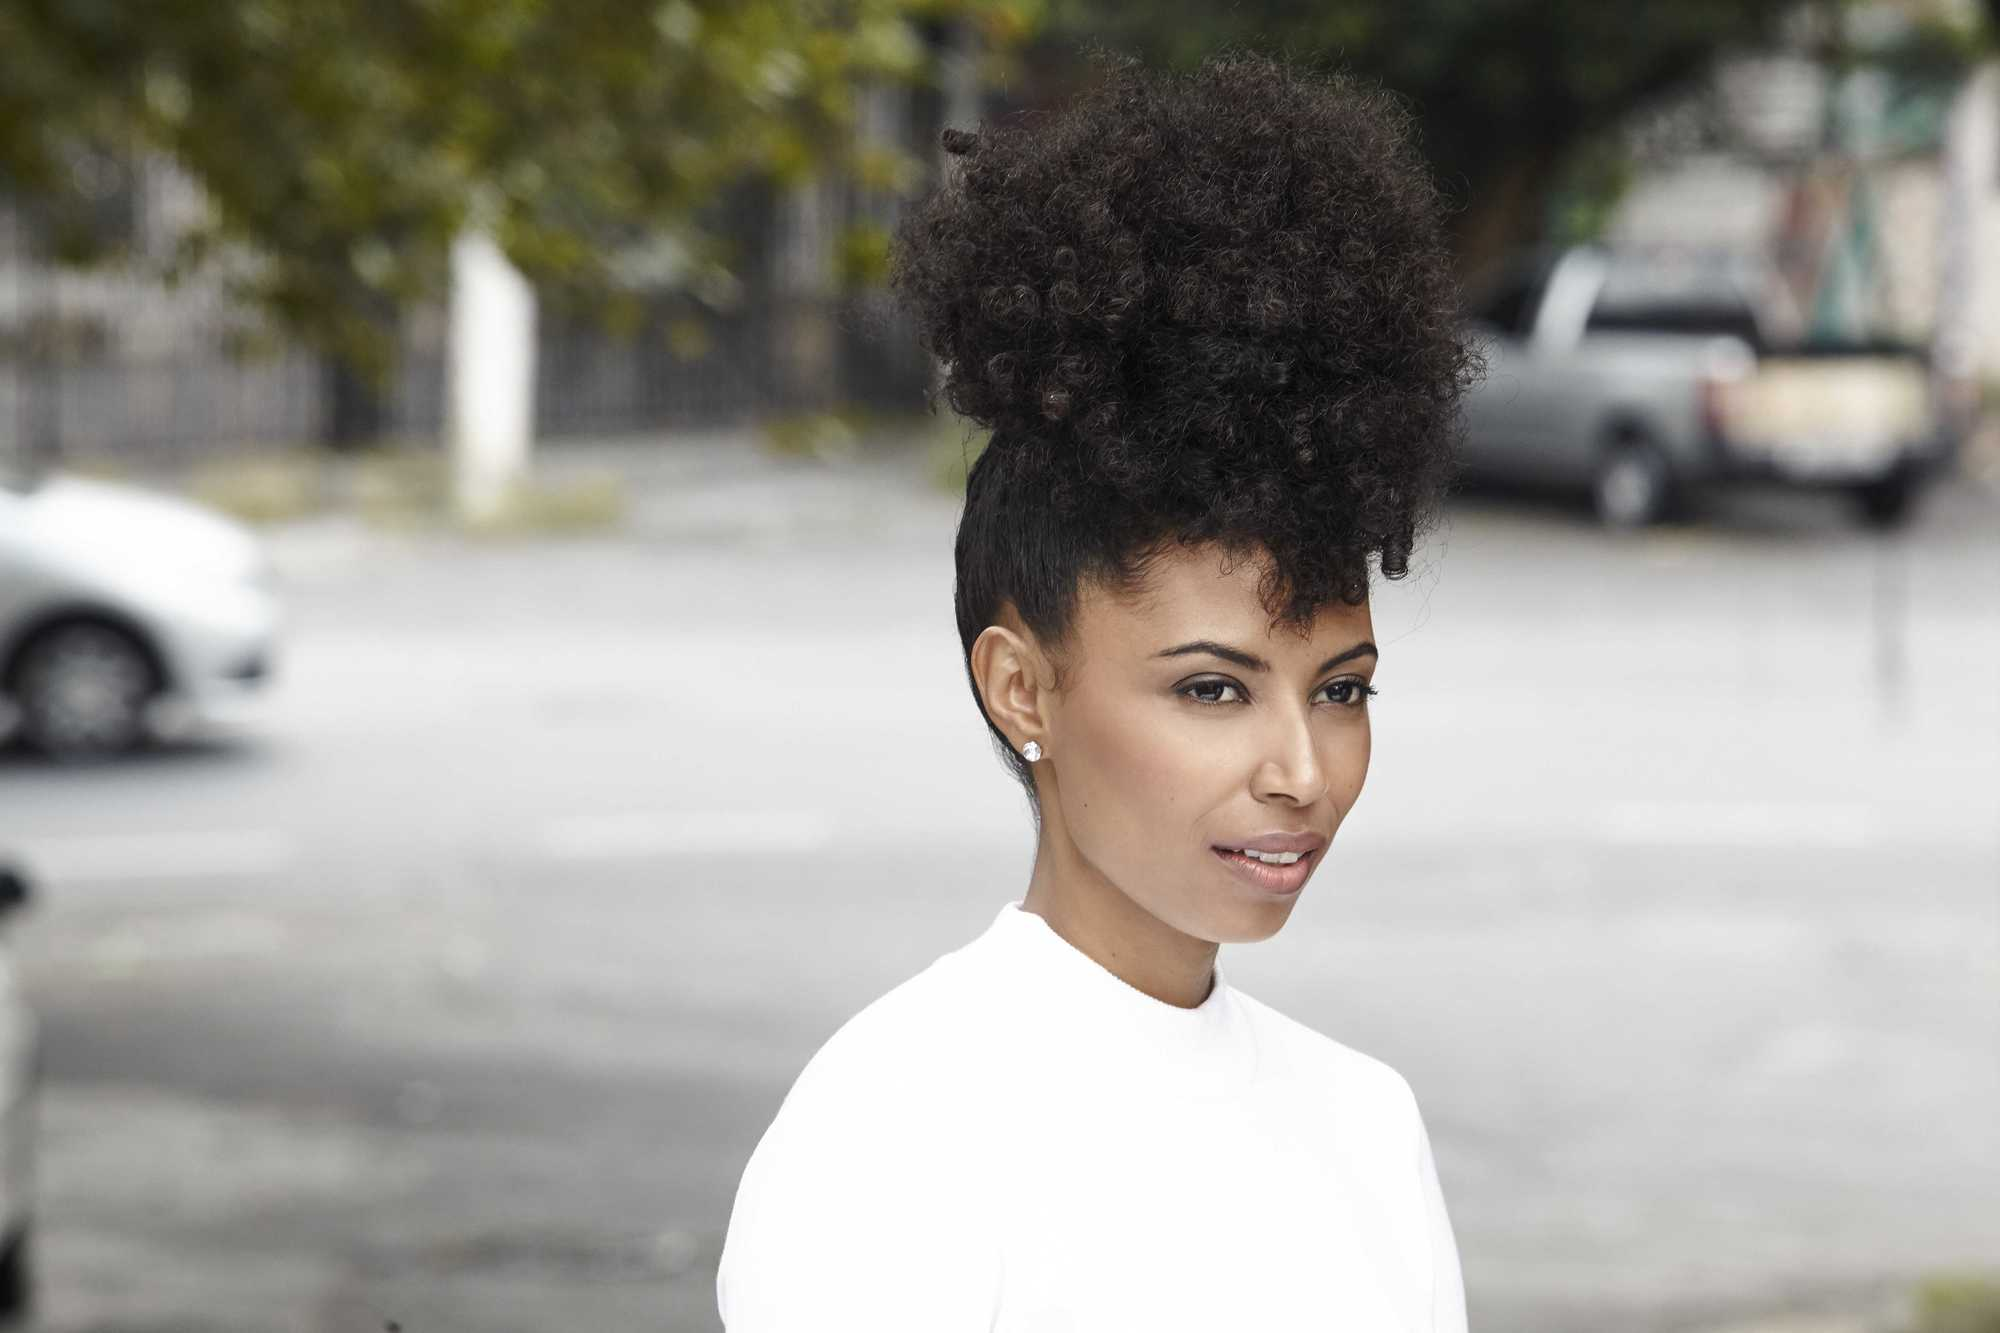 easy natural hairstyles: close up shot of woman with natural hair styled into a pineapple updo